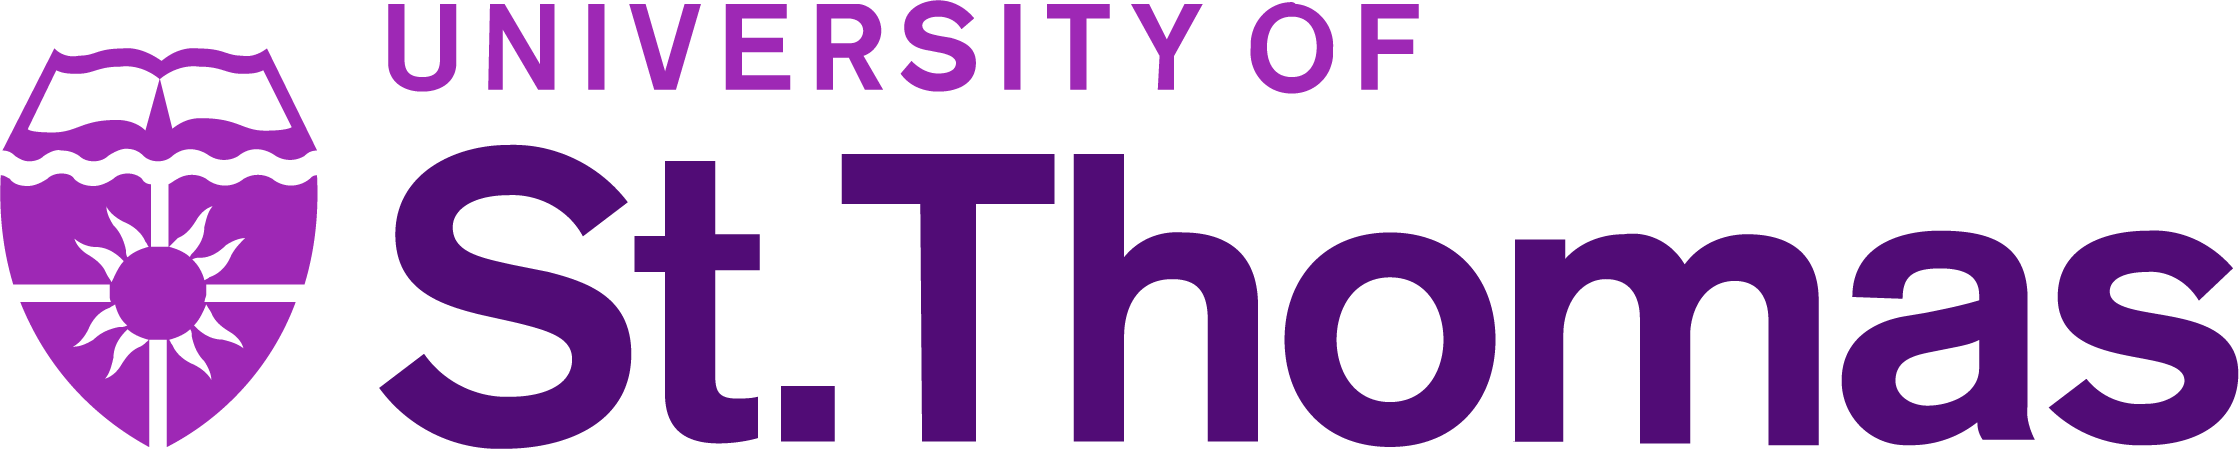 university-of-st-thomas-logo.png